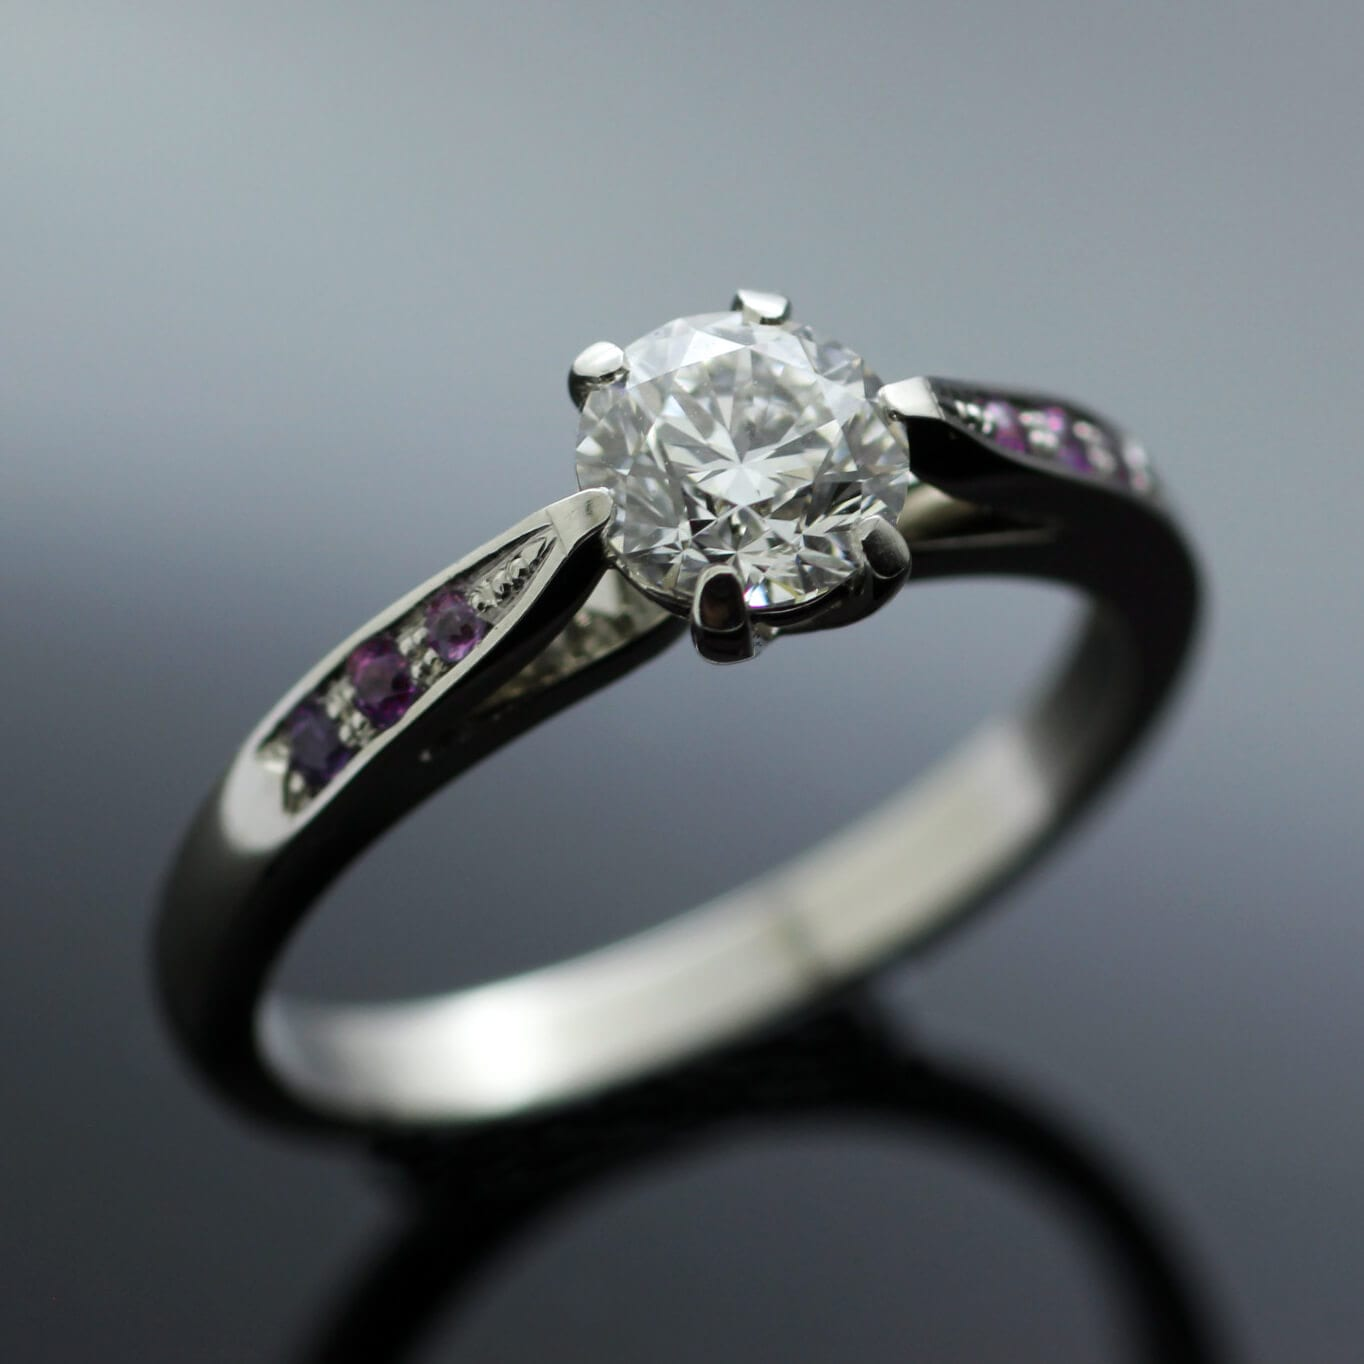 Bespoke Platinum and Round Brilliant Diamond engagement ring by Julian stephens